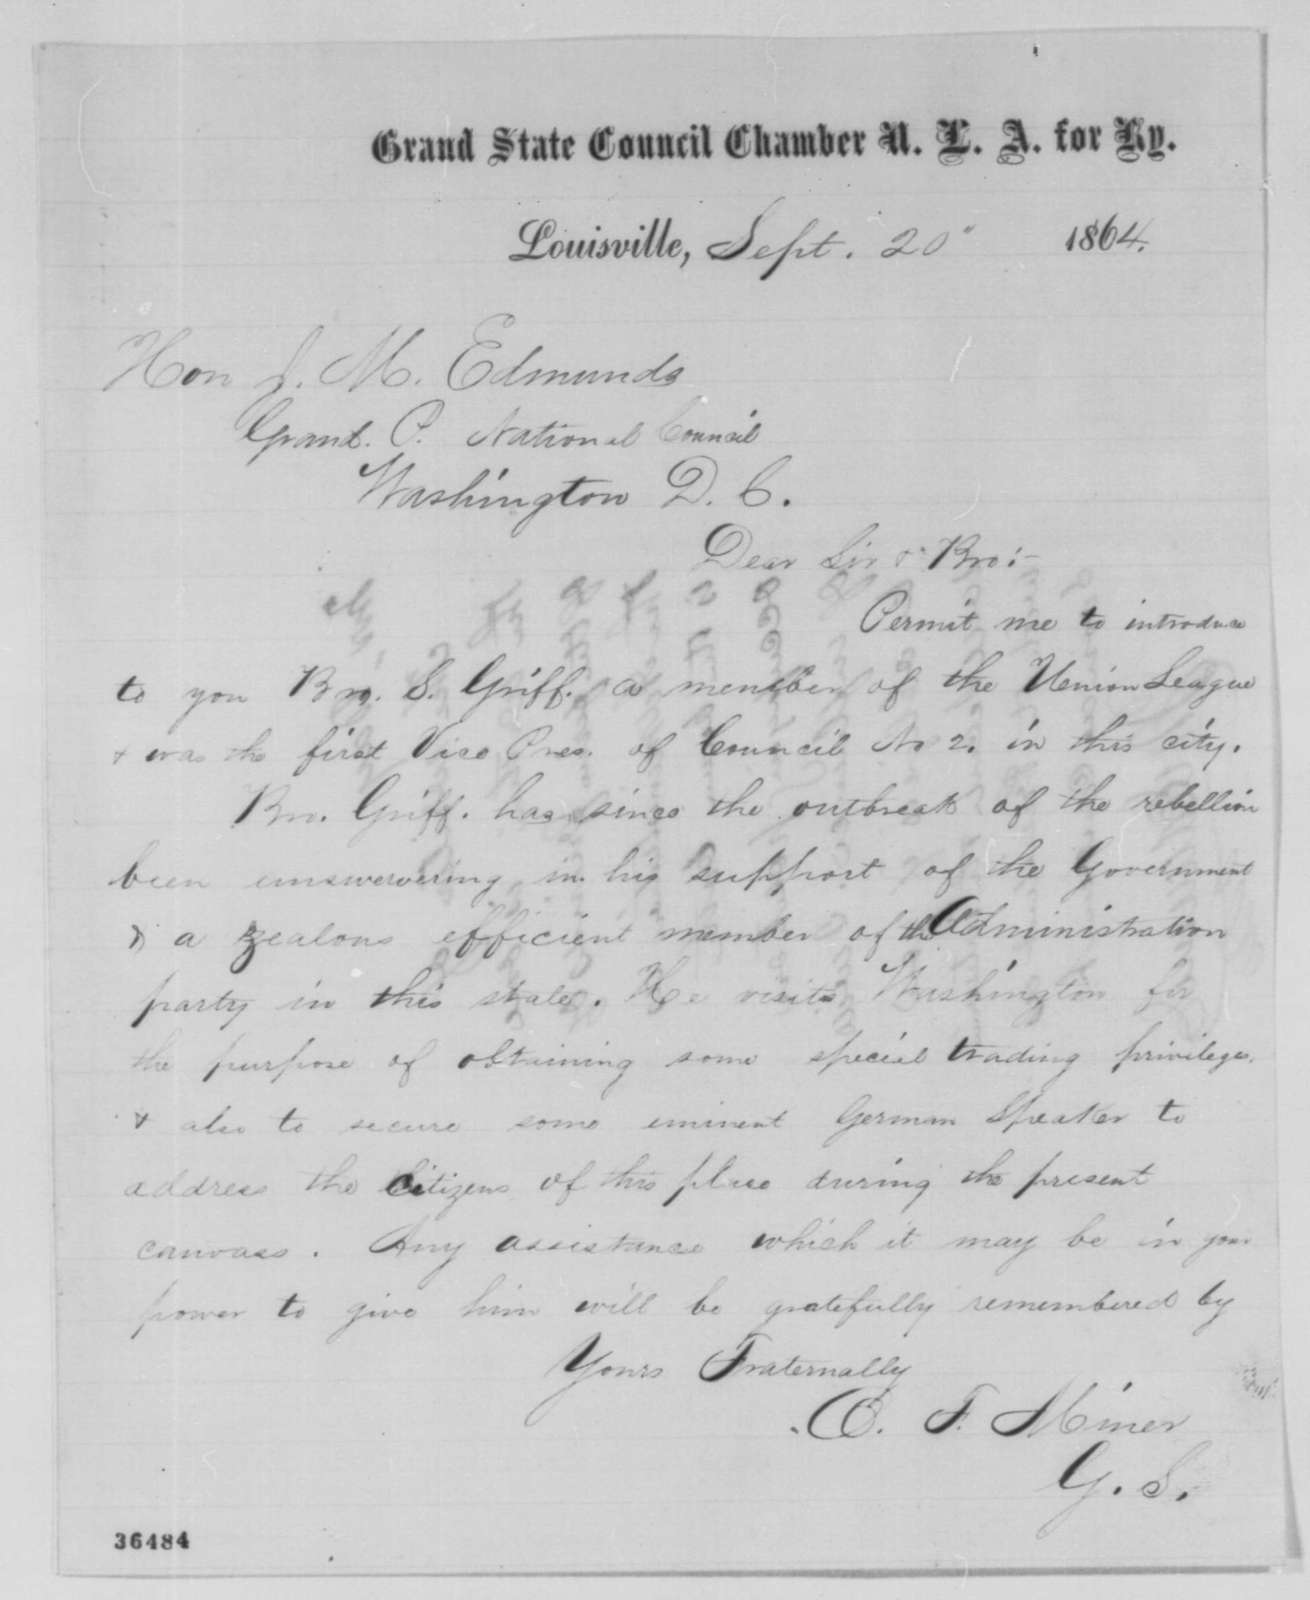 O. F. Miner to James M. Edmunds, Tuesday, September 20, 1864  (Introduction; endorsed by Edmunds)